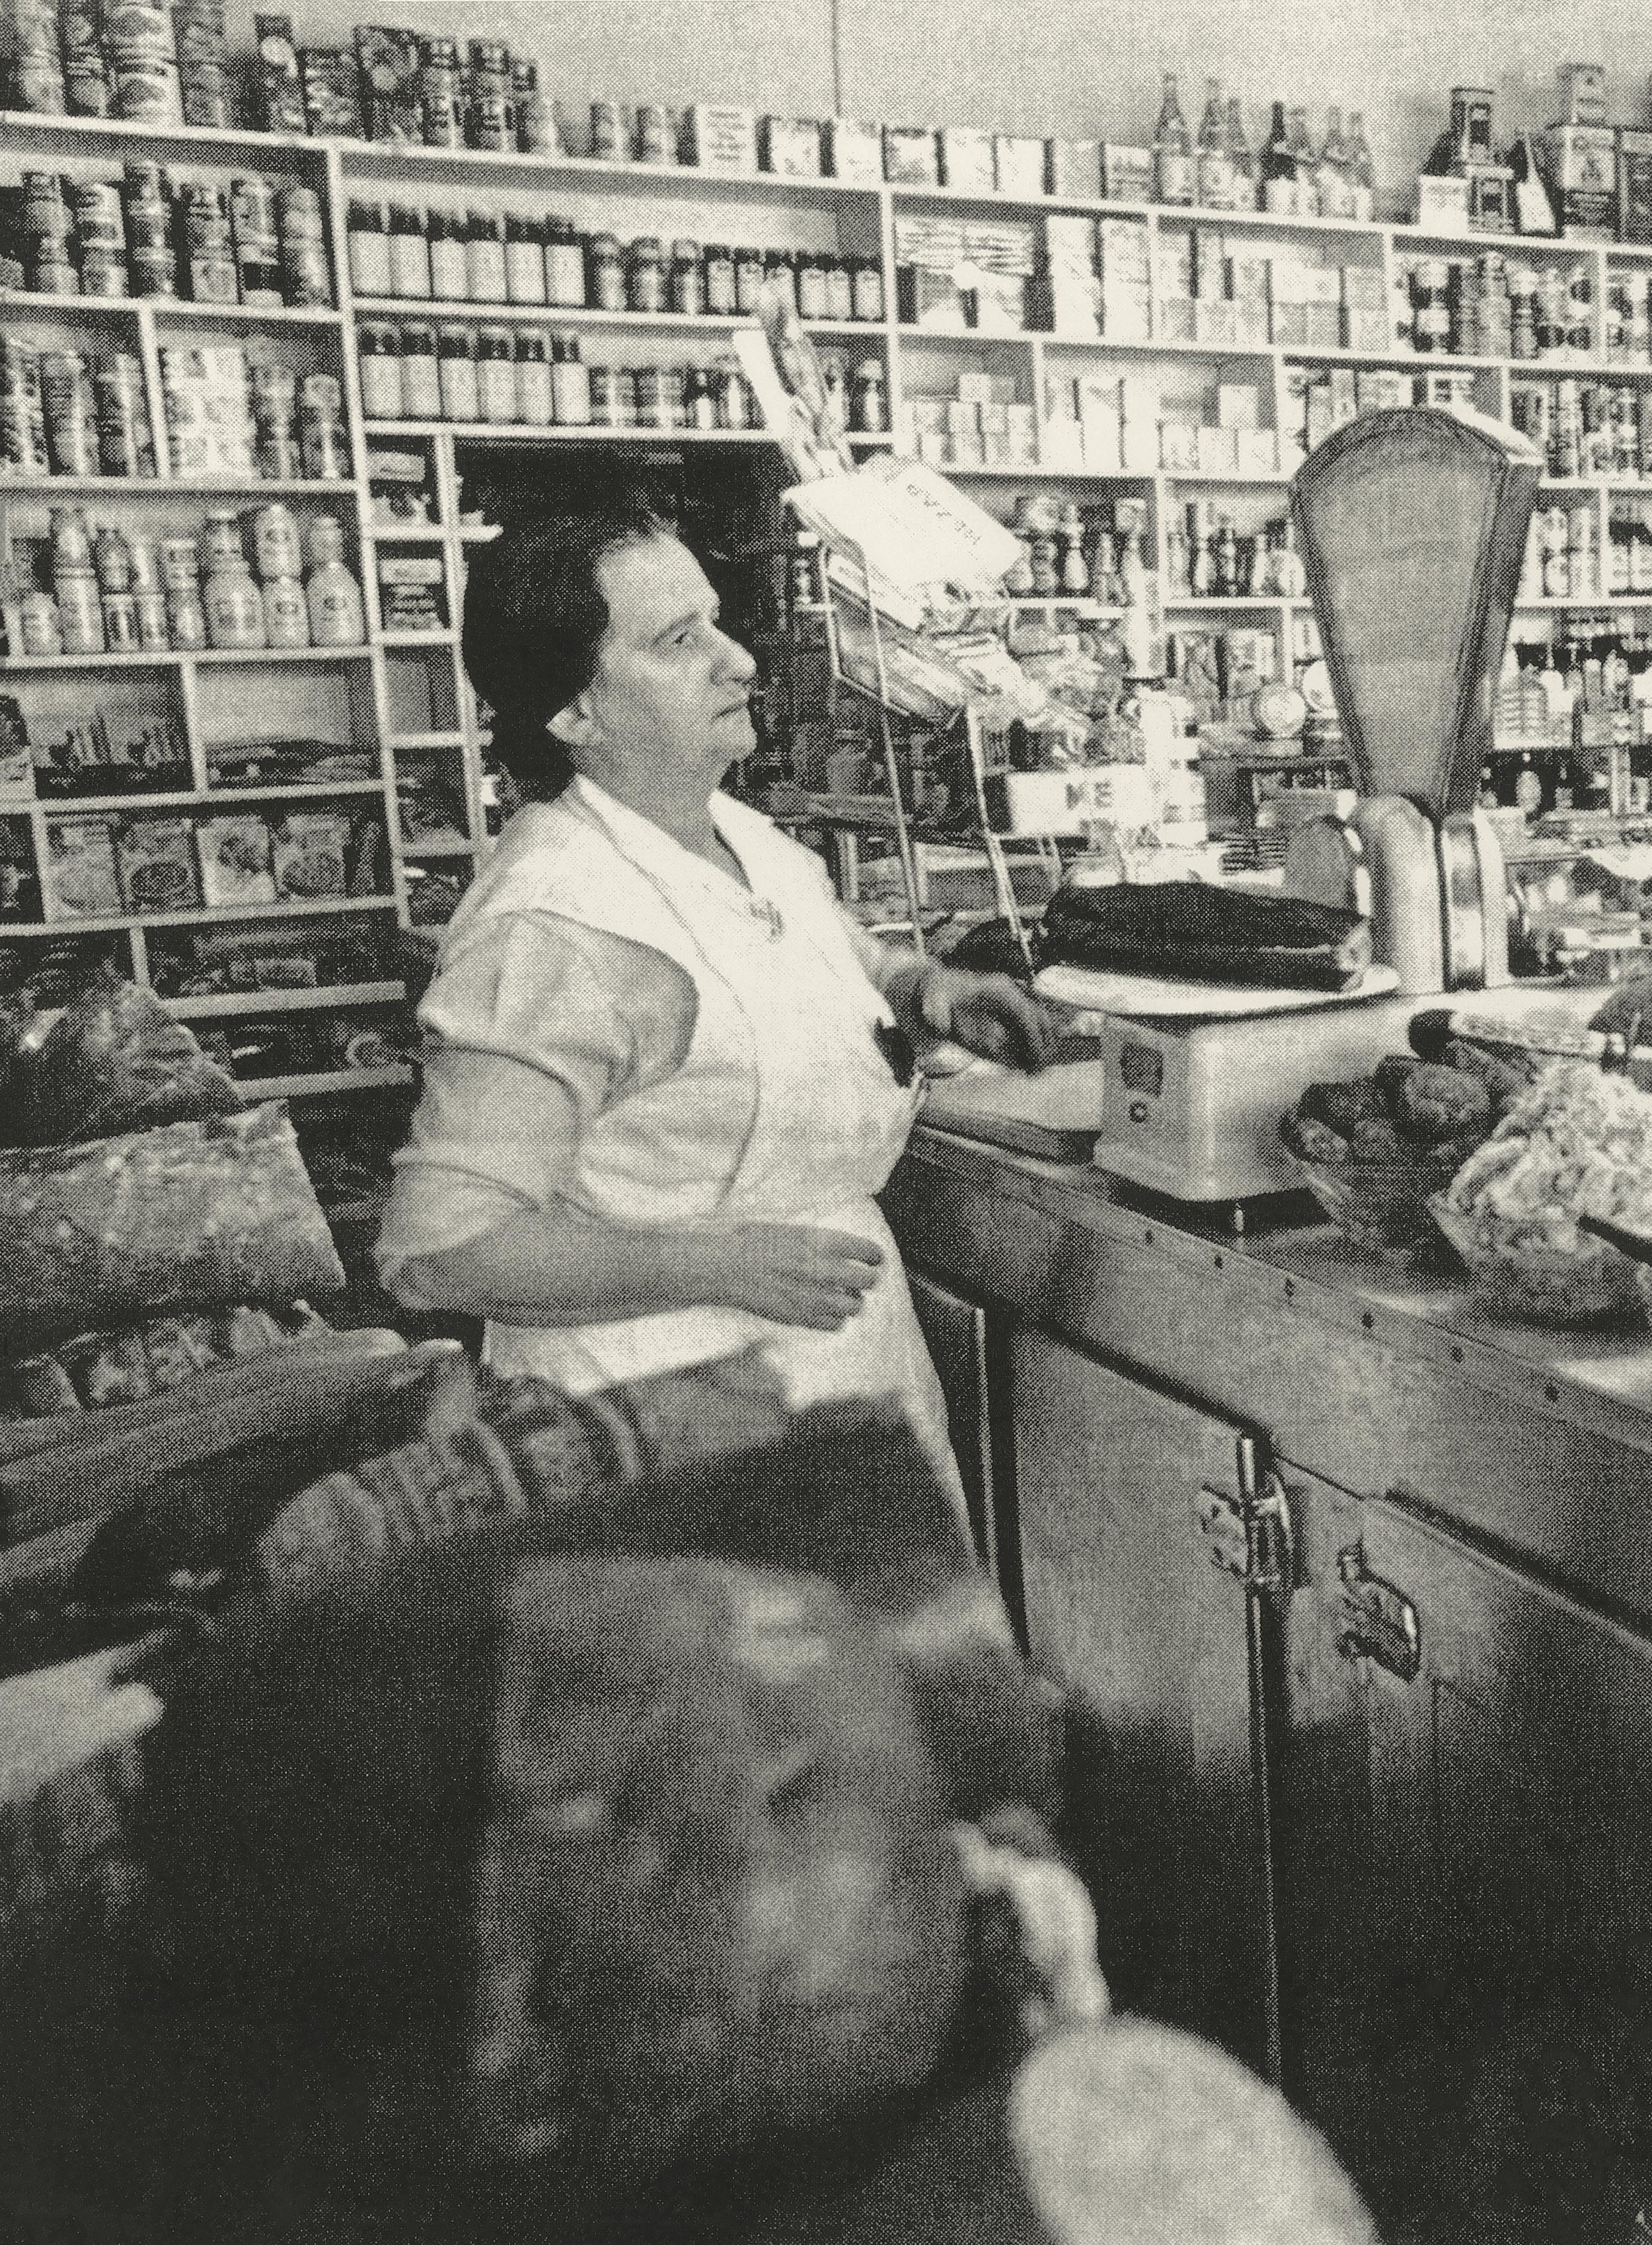 Rose Lewis in her famous deli and cake shop, Rosemarie, in South Yarra (date unknown).